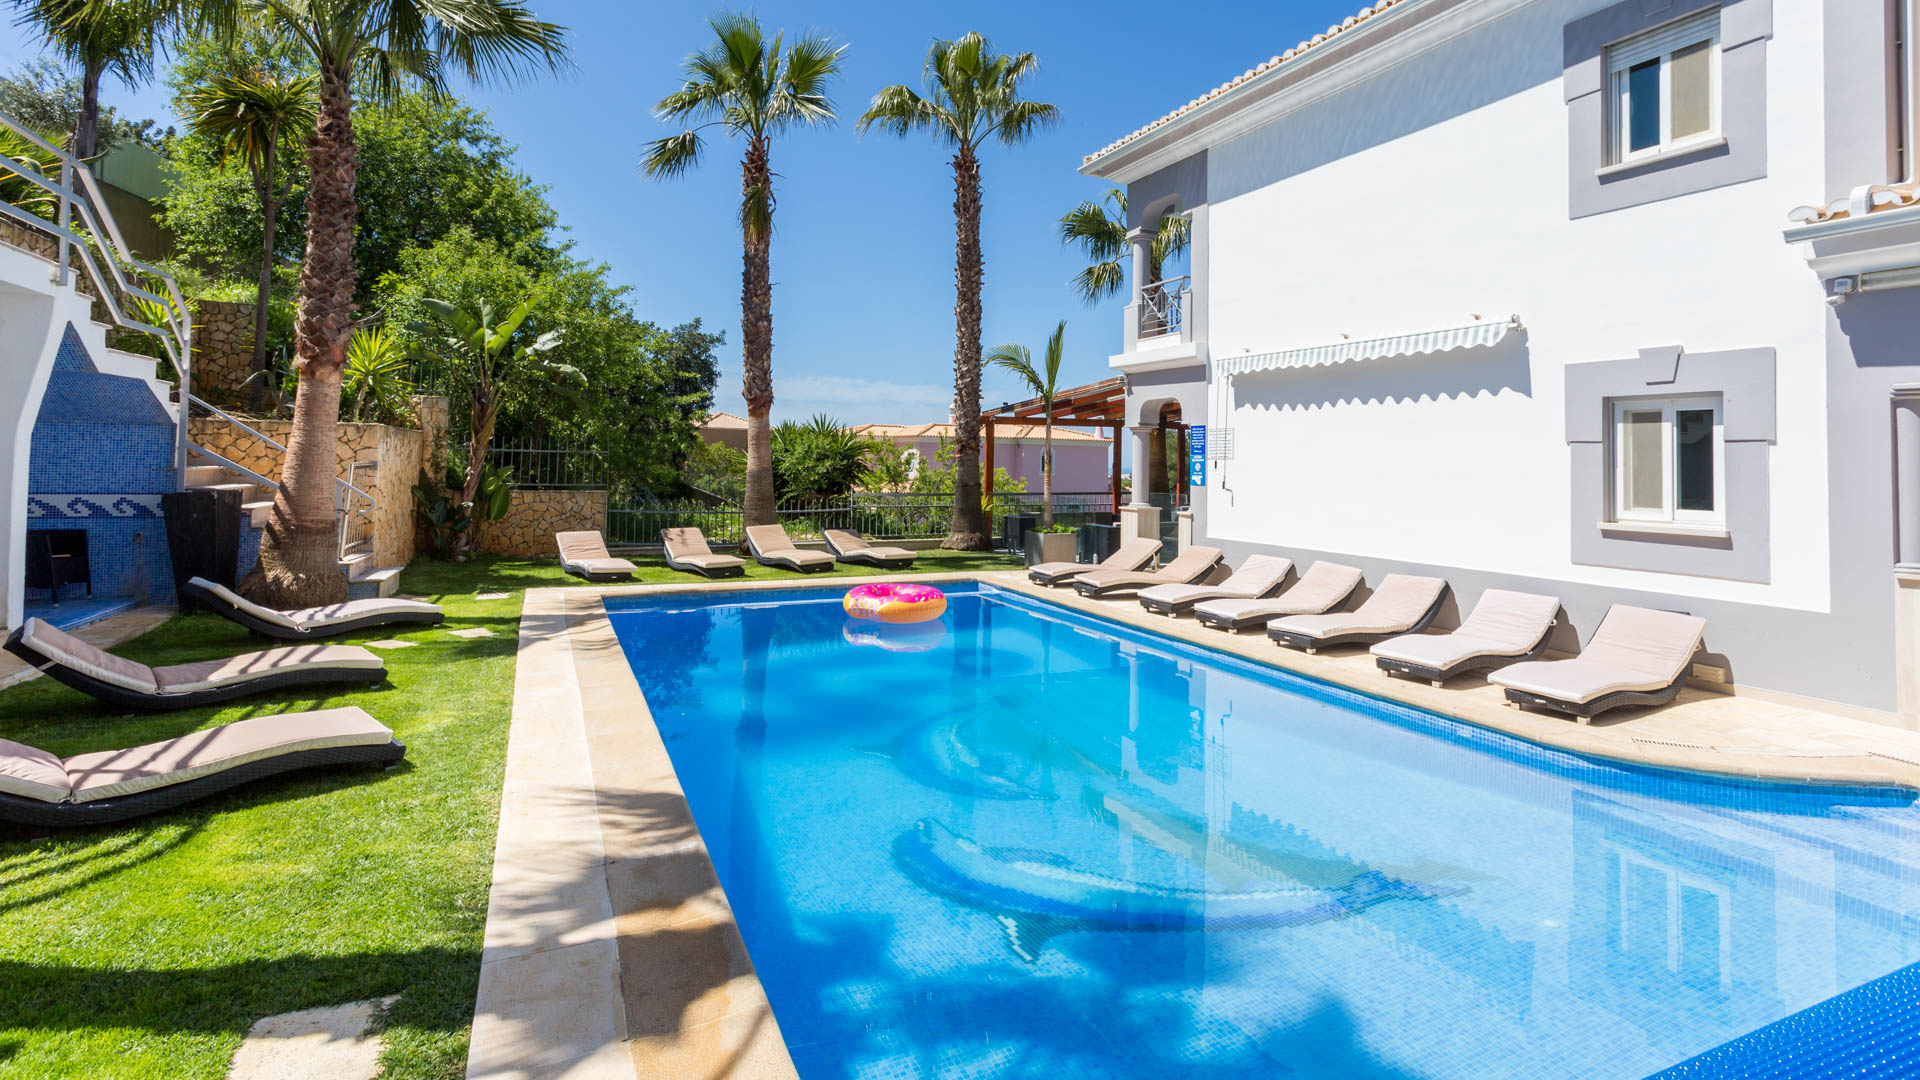 Villa Albufeira LS429,Wonderful and luxury villa in Albufeira, on the Algarve, Portugal  with private pool for 12 persons.....